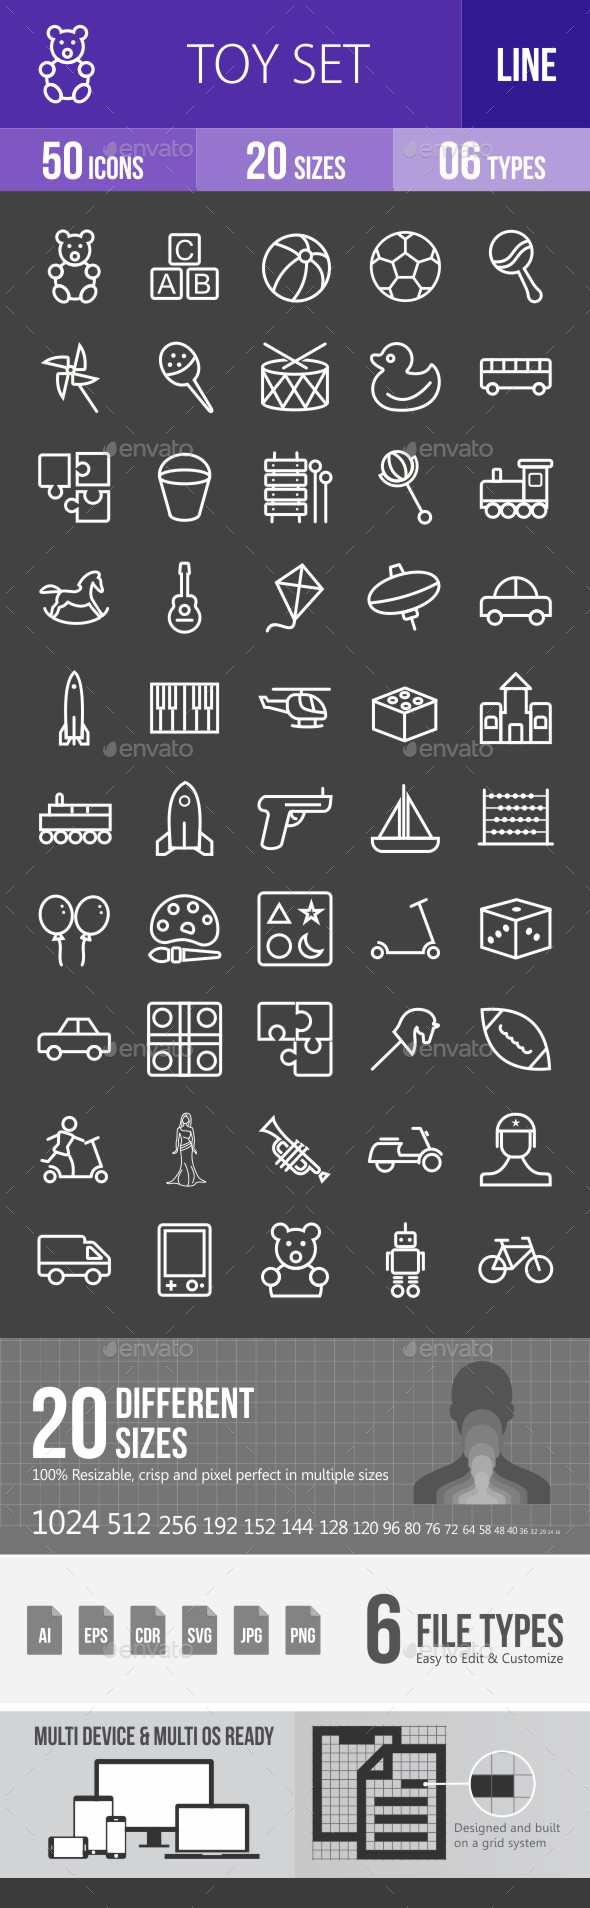 Toys Line Inverted Icons - Icons